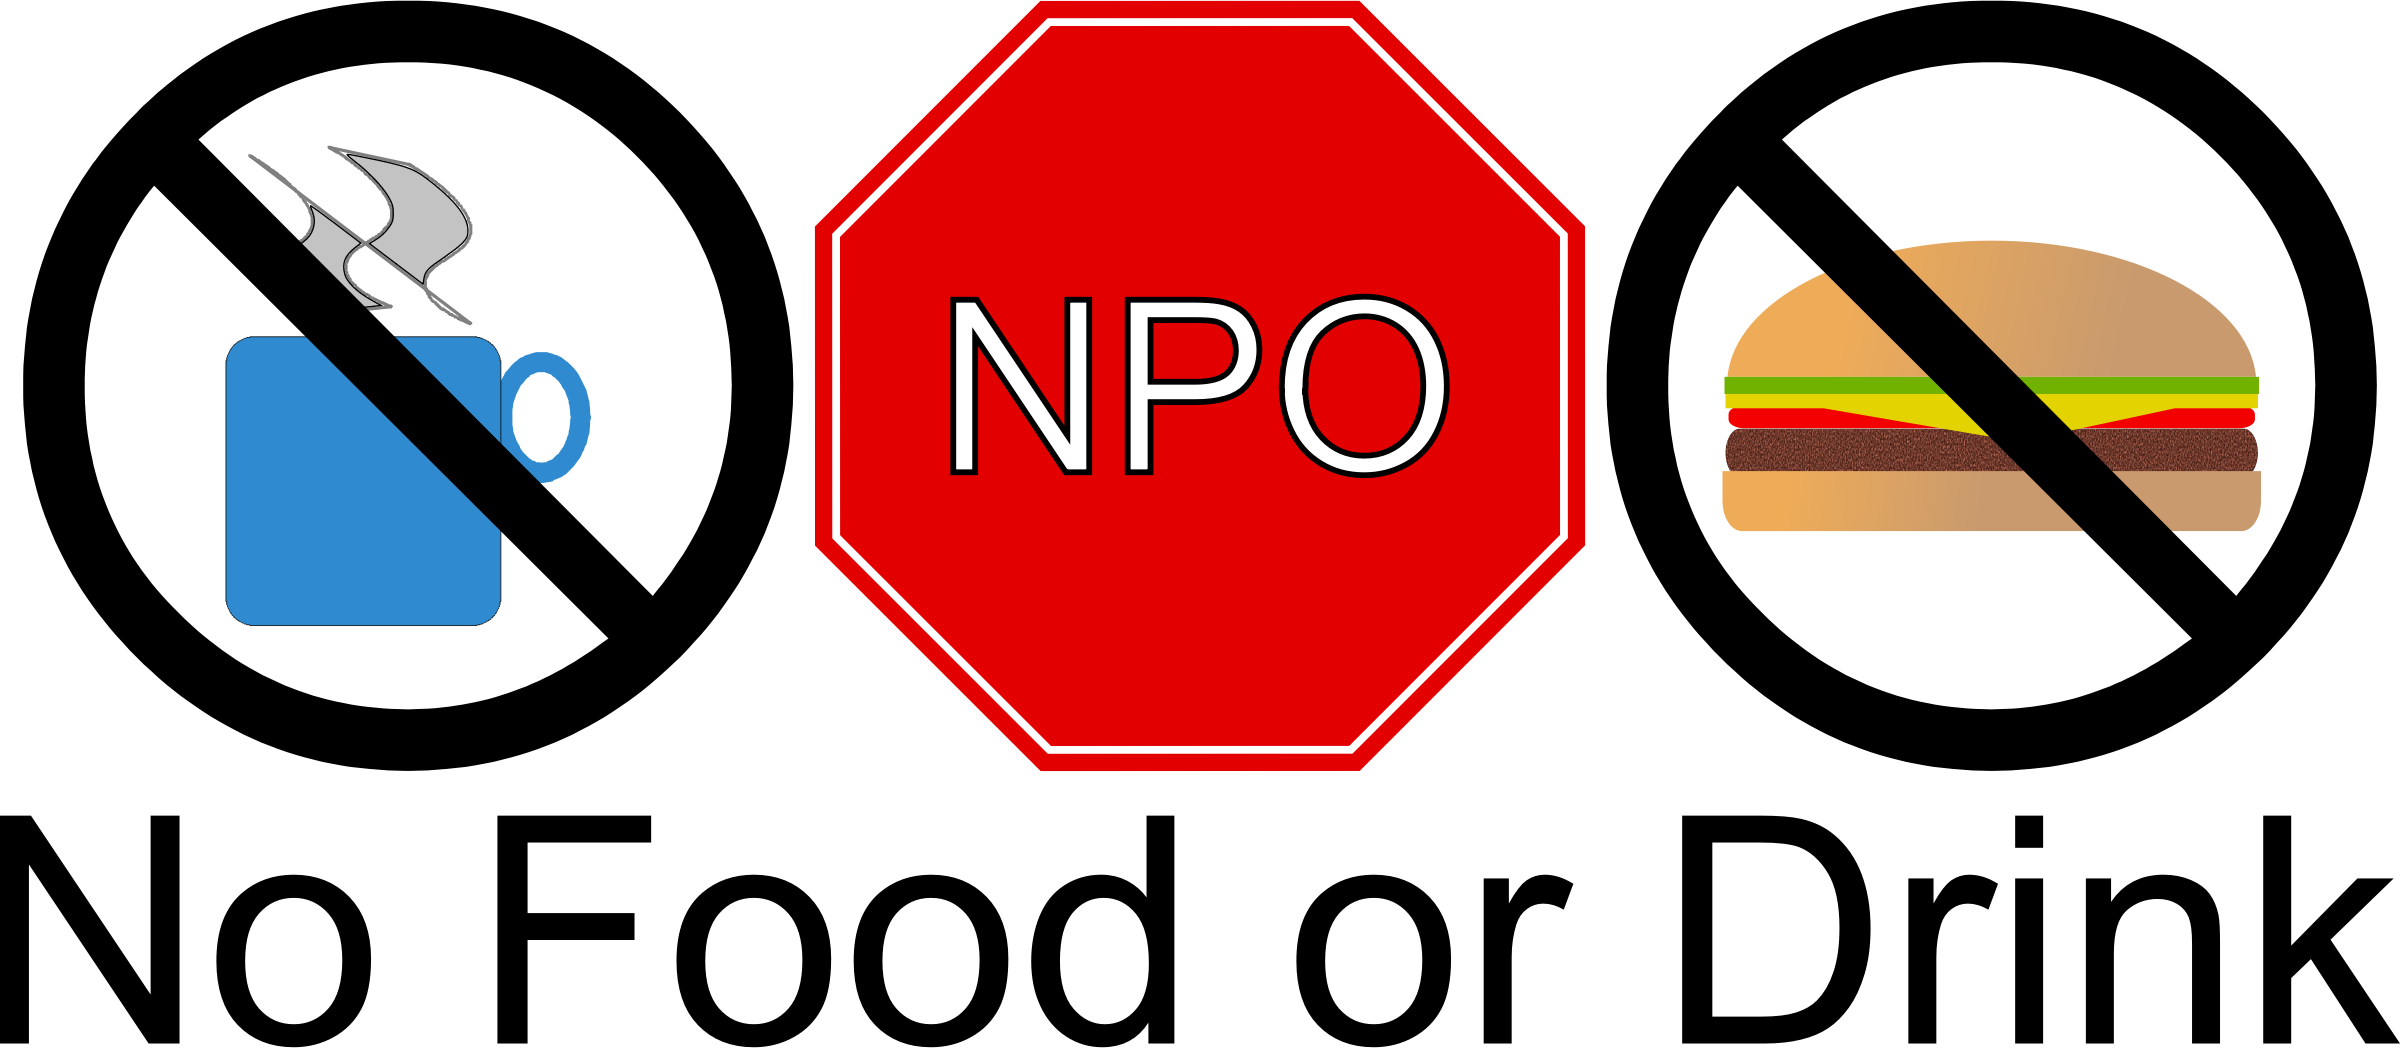 Free Publisher Clipart Npo